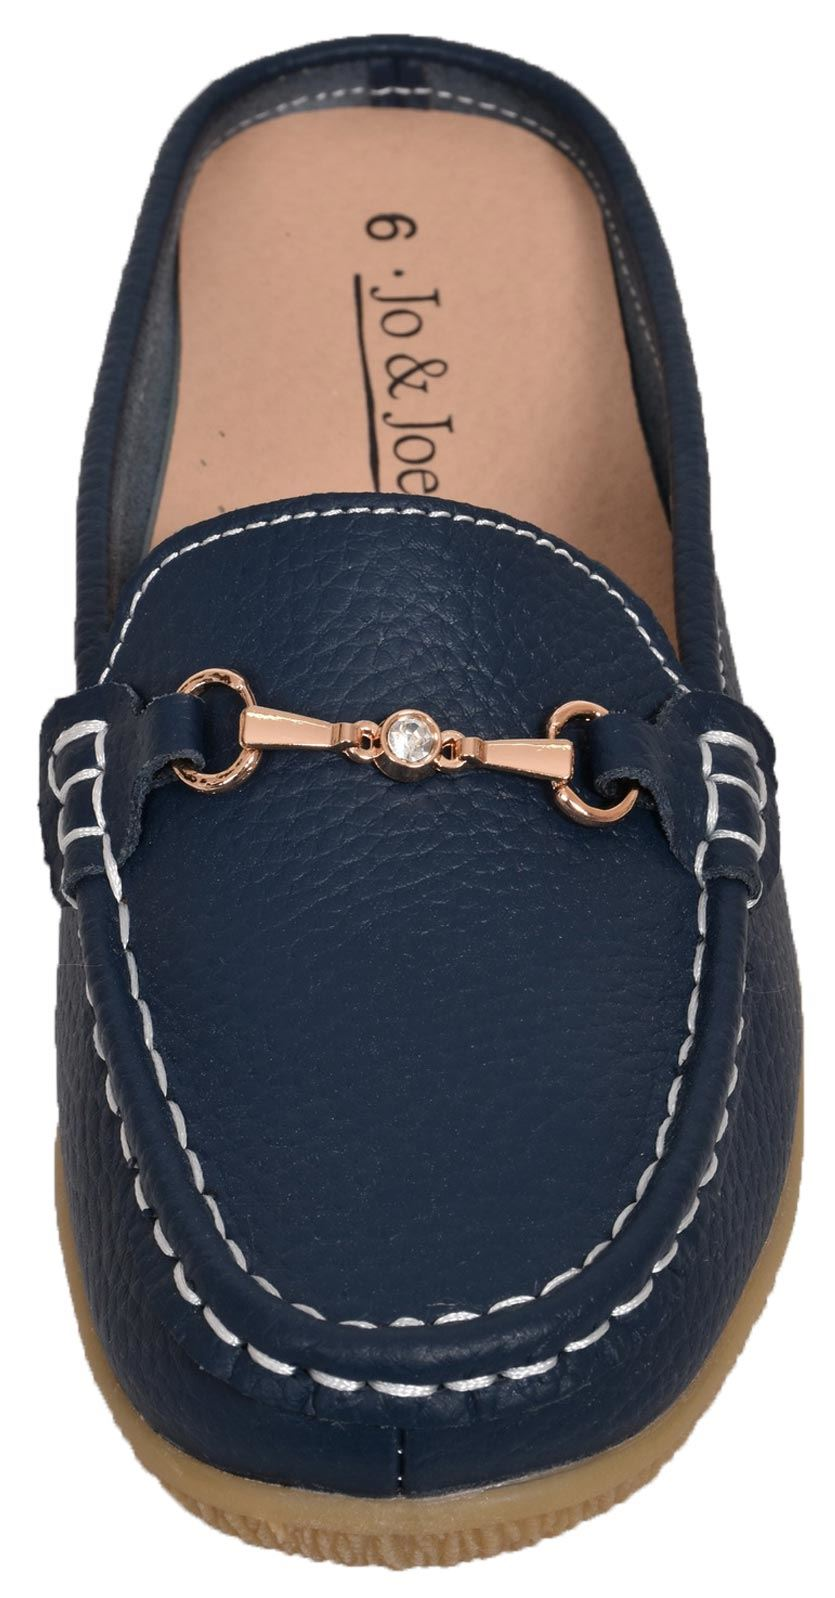 Ladies-Leather-Loafer-Mules-Comfort-Shoes-Womens-Slider-Moccasins-Shoes thumbnail 26